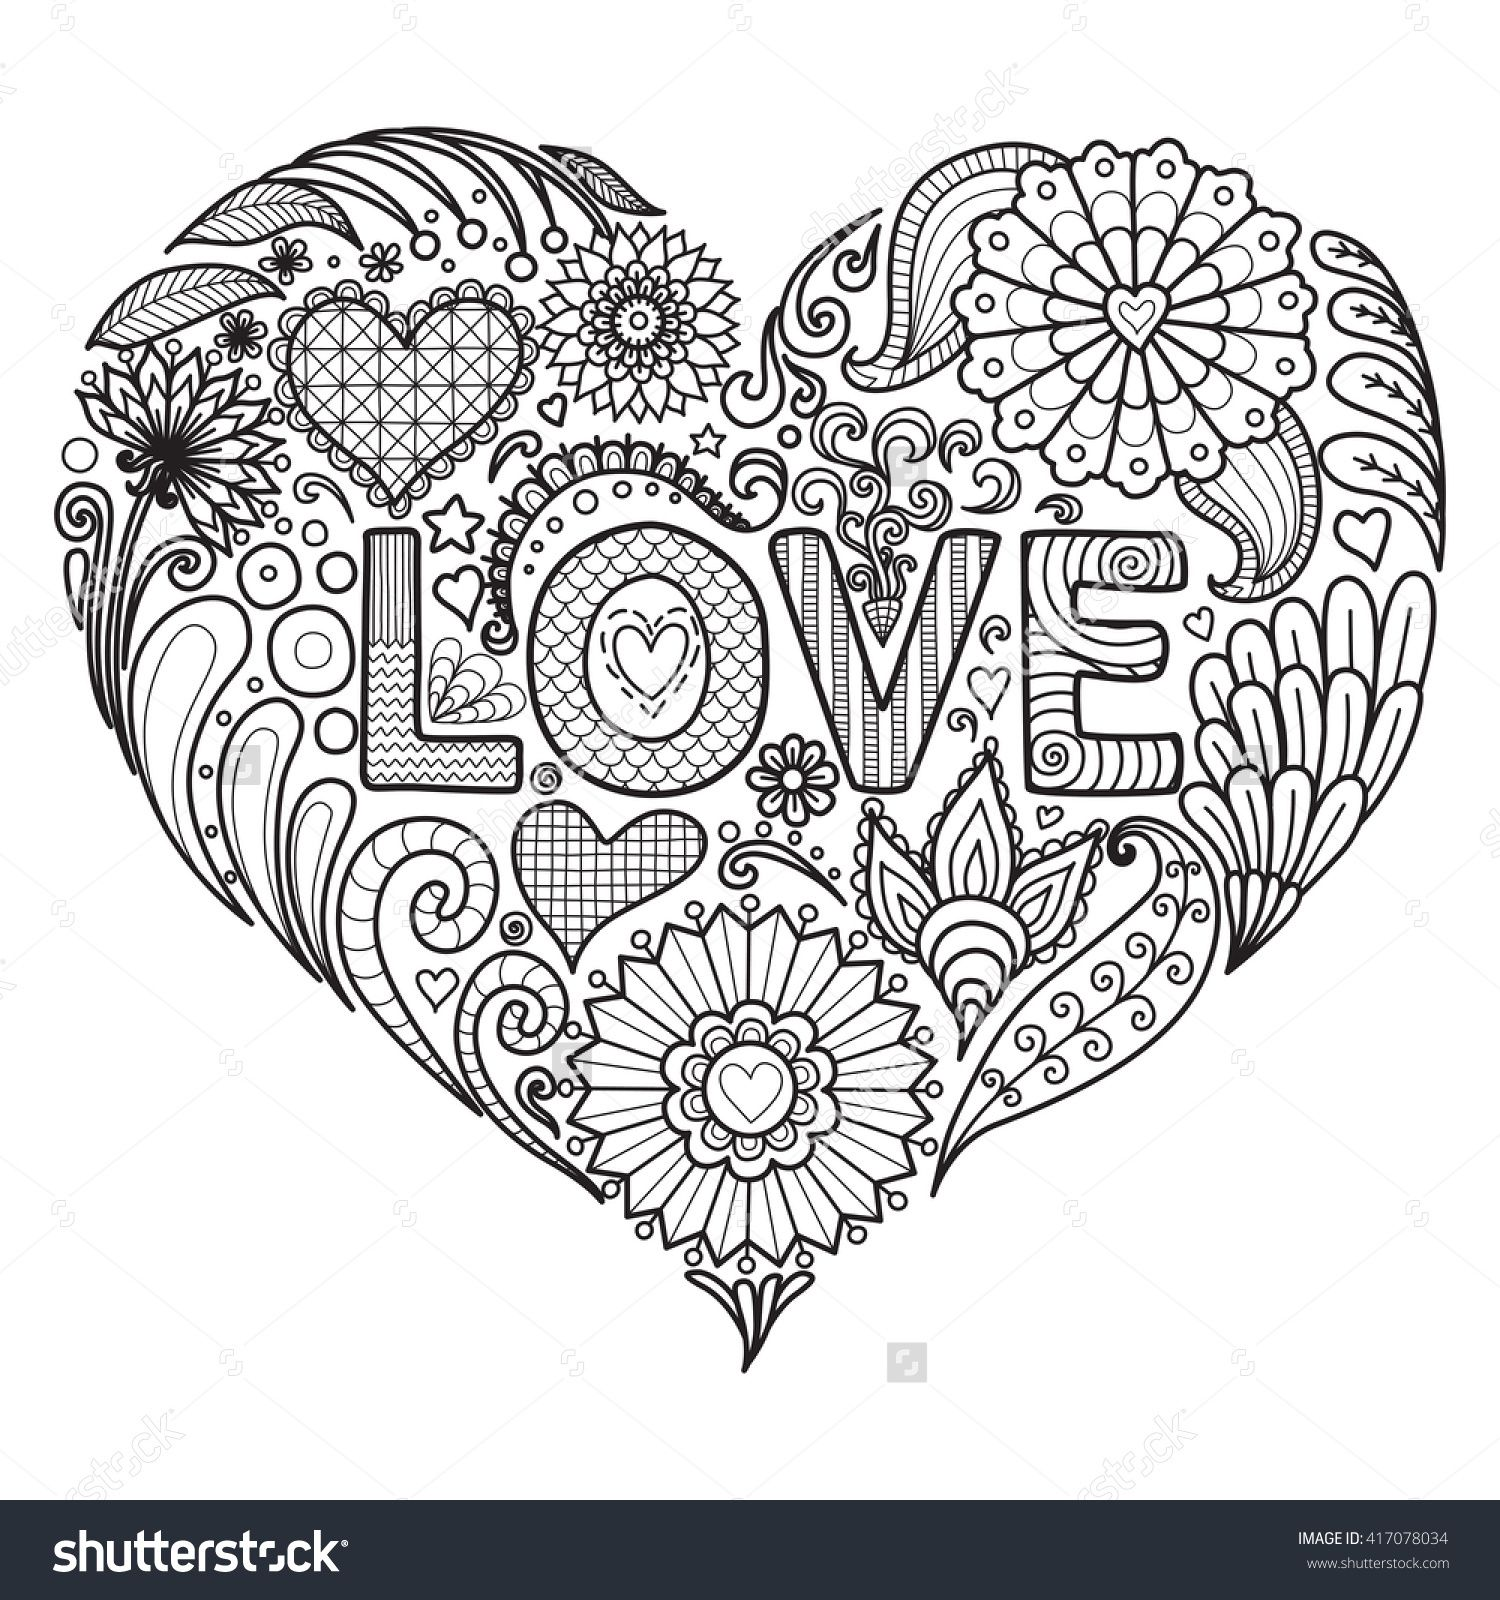 Free coloring pages hearts and flowers - Heart On Flowers Coloring Books For Adult I Shutterstock 417078034